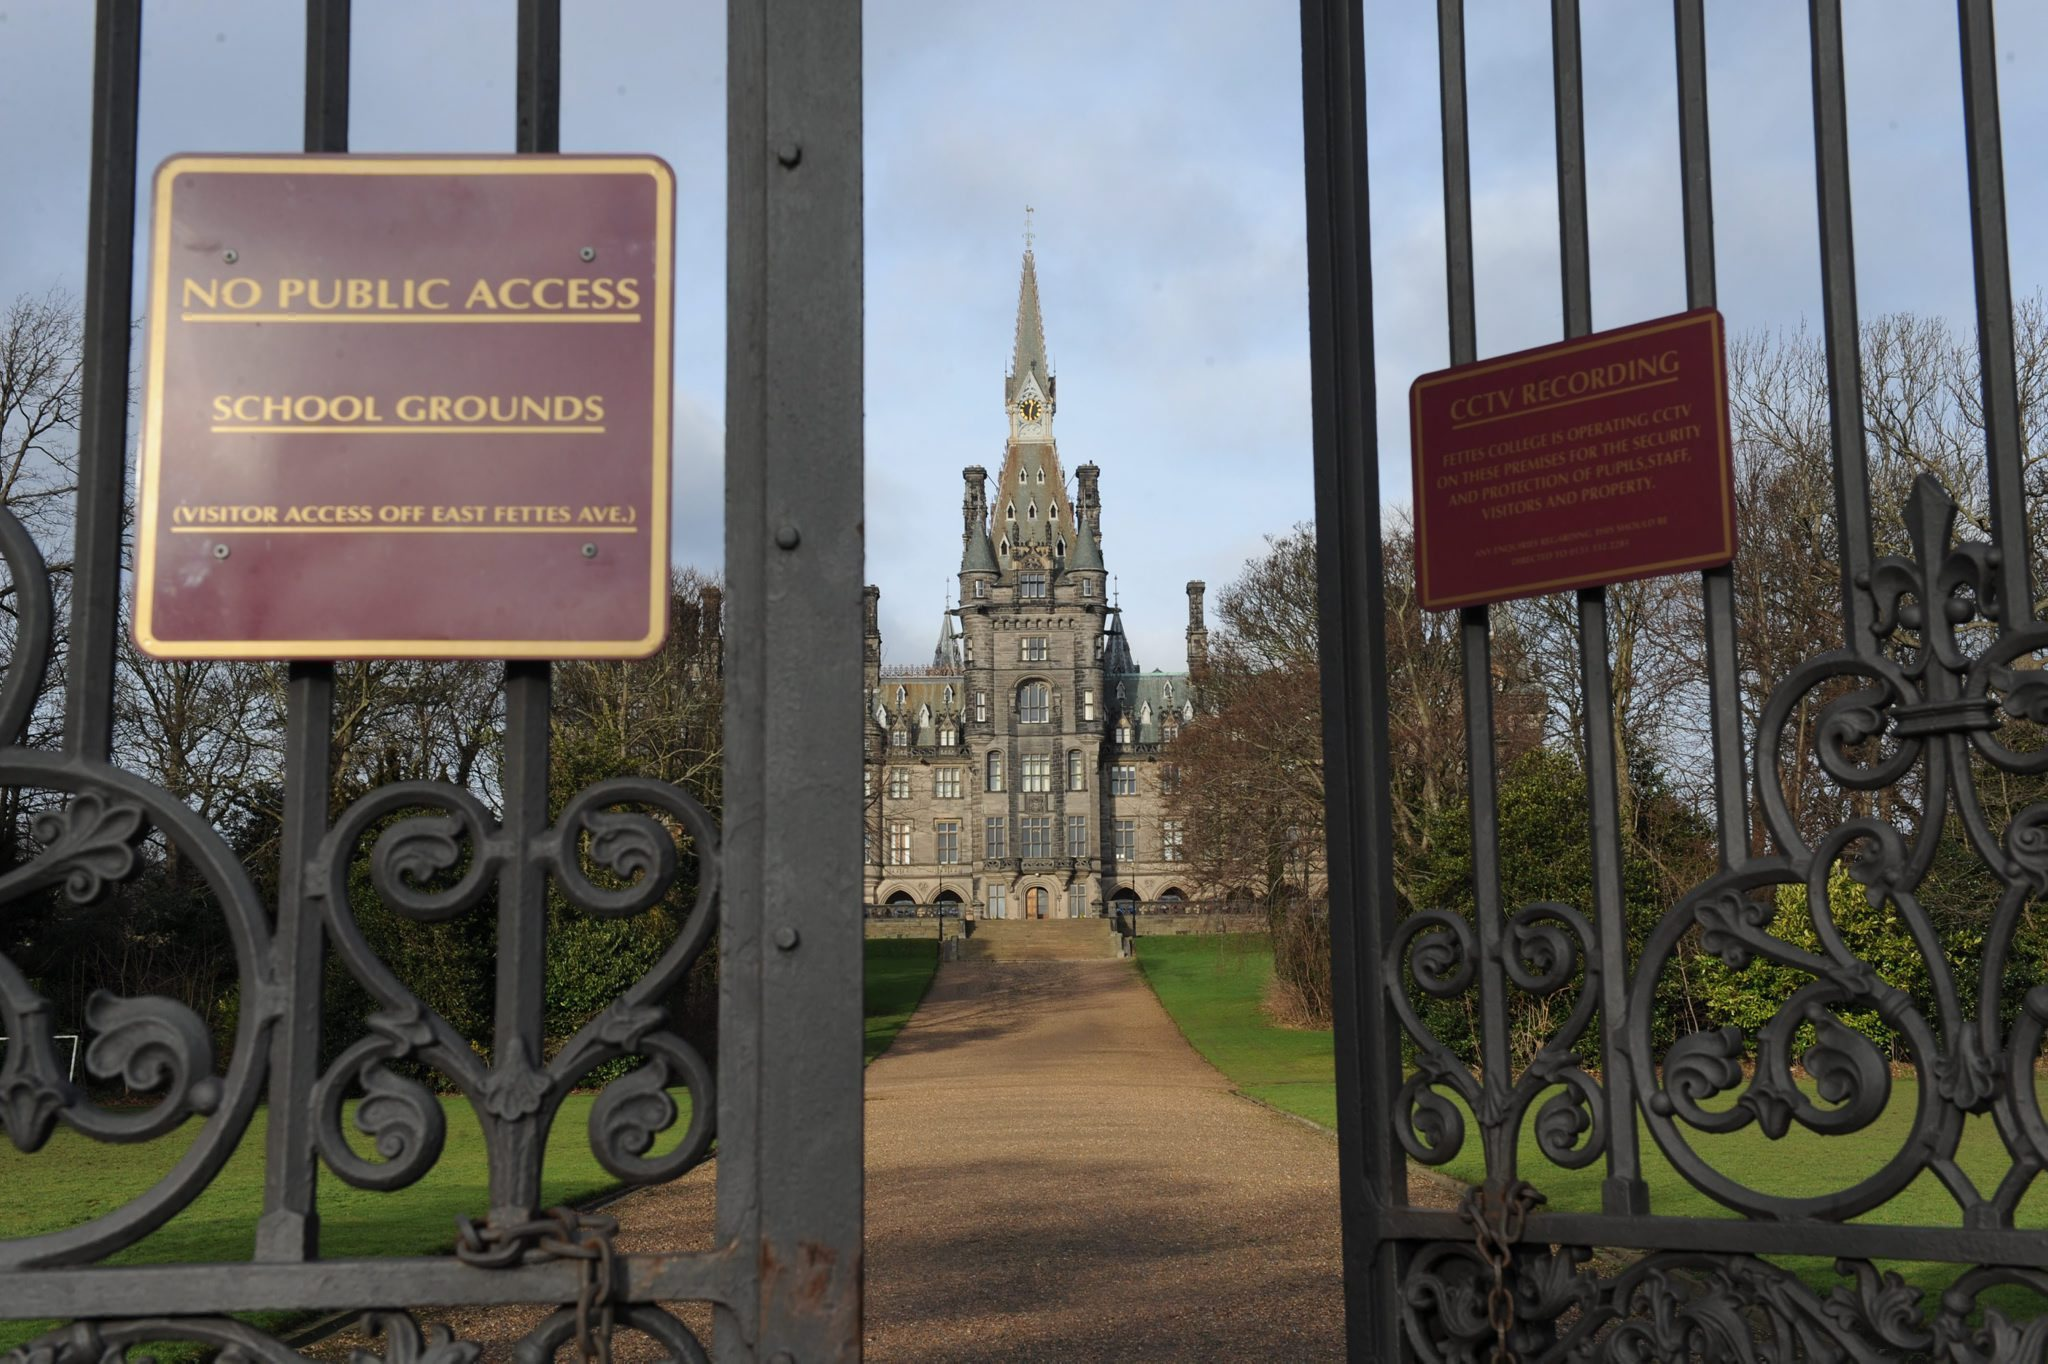 The gothic spires of Fettes College dominate the skyline across the upmarket Stockbridge area of Edinburgh